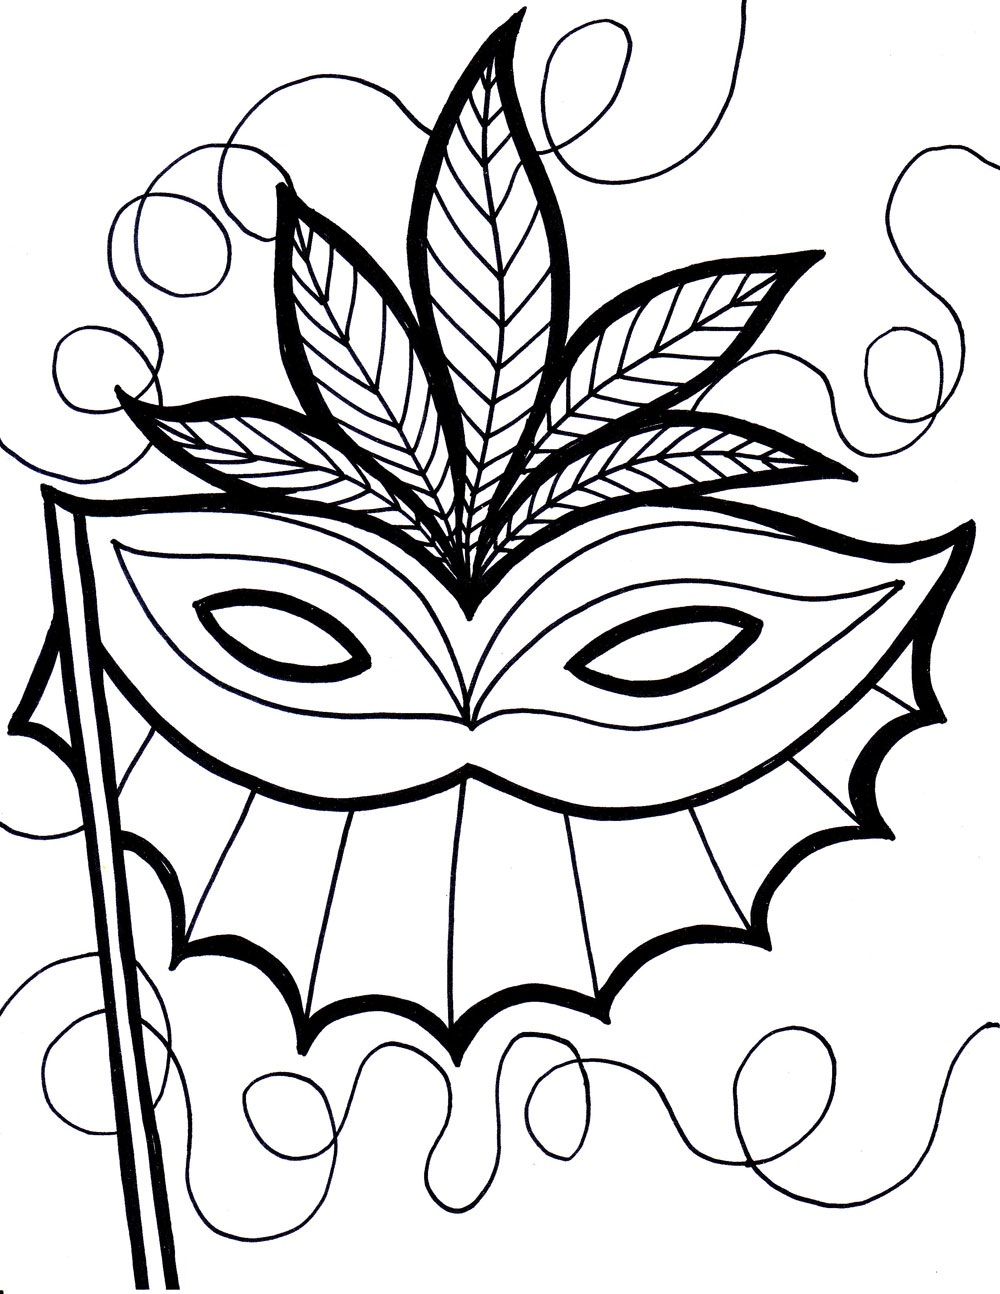 Free Printable Mask Coloring Pages | Coloring Pages